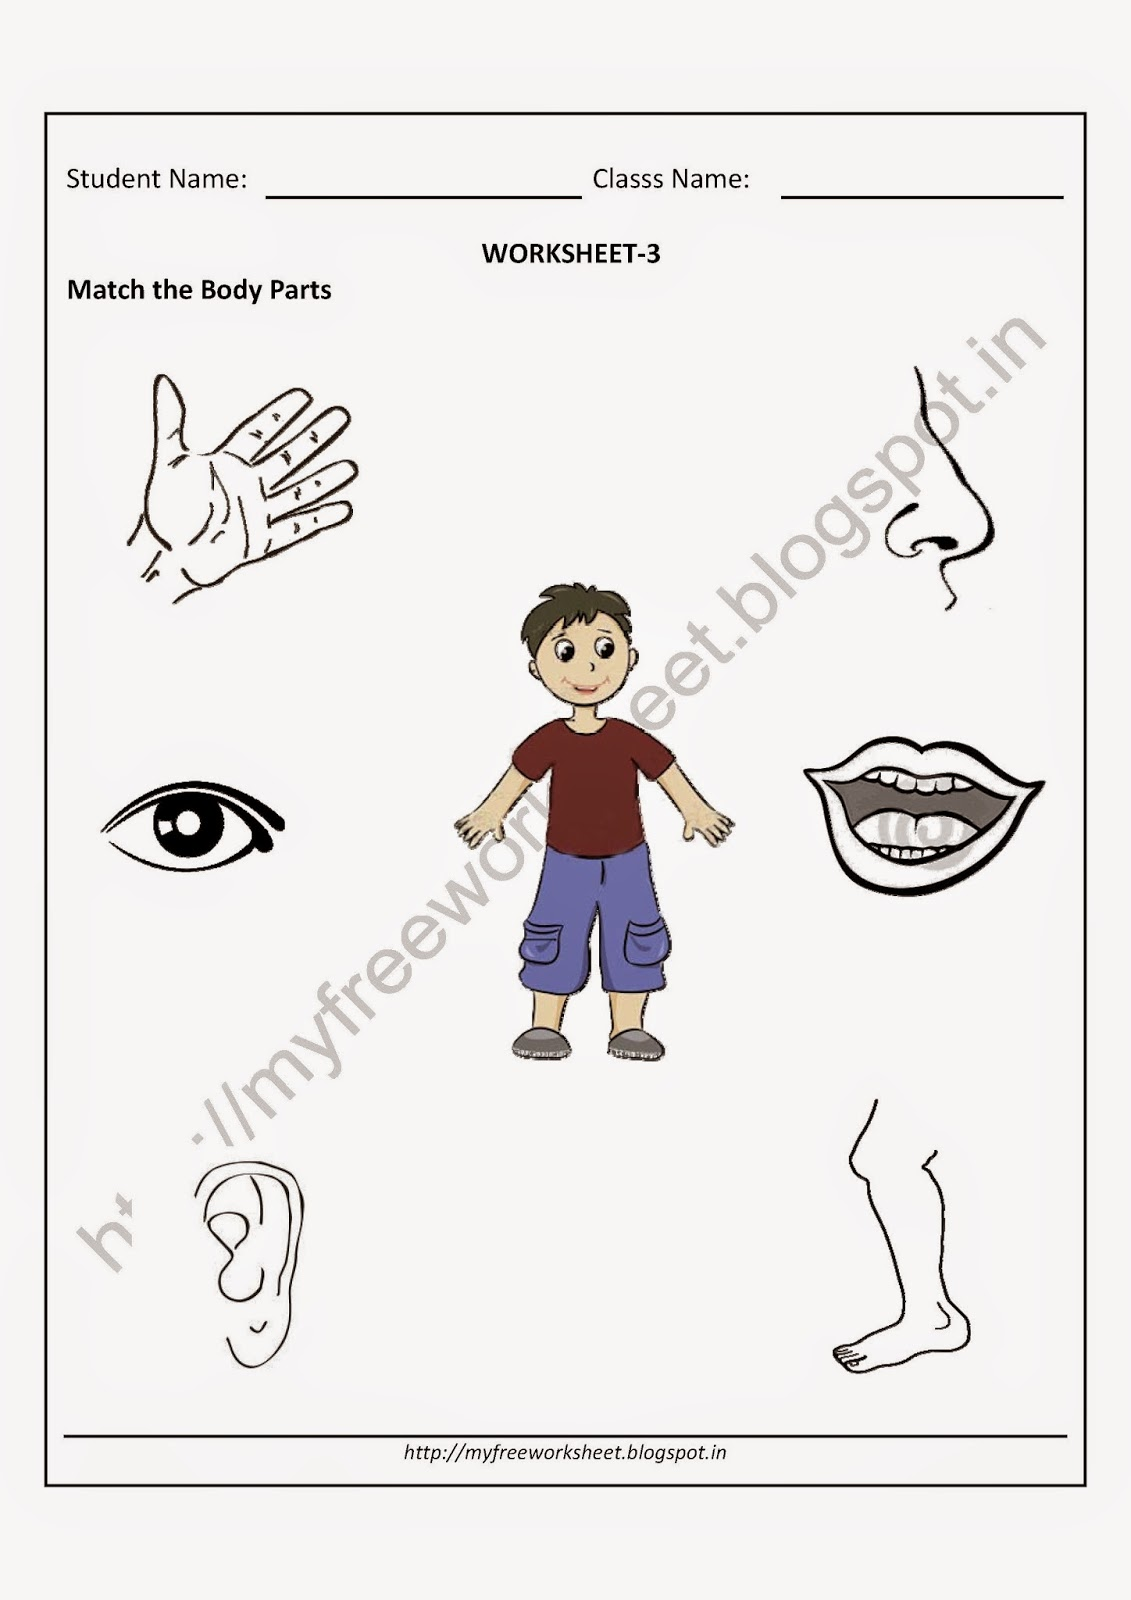 worksheet Body Parts Worksheets For Grade 1 free printable worksheets for nursery match the body parts worksheet 3 my worksheet